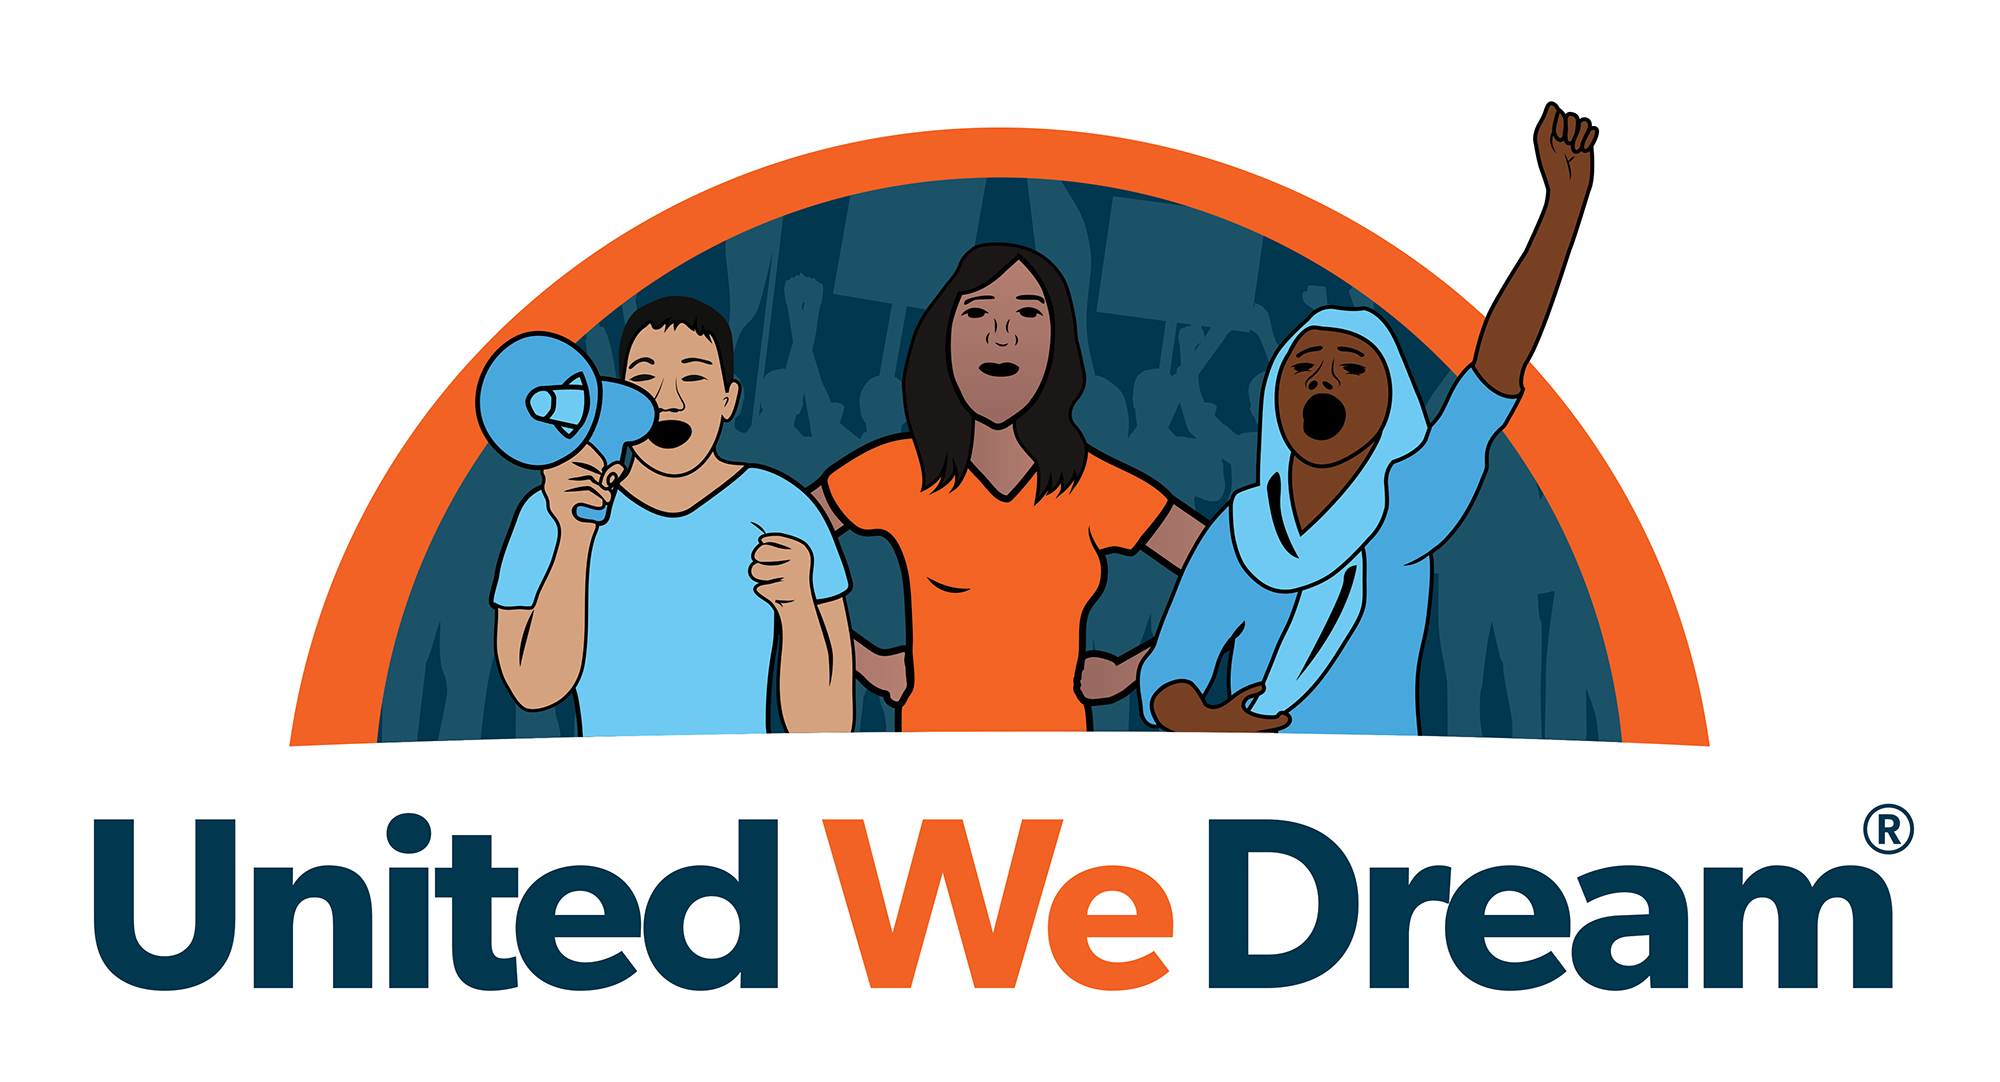 Immigrant drawing deportation. United we dream announces